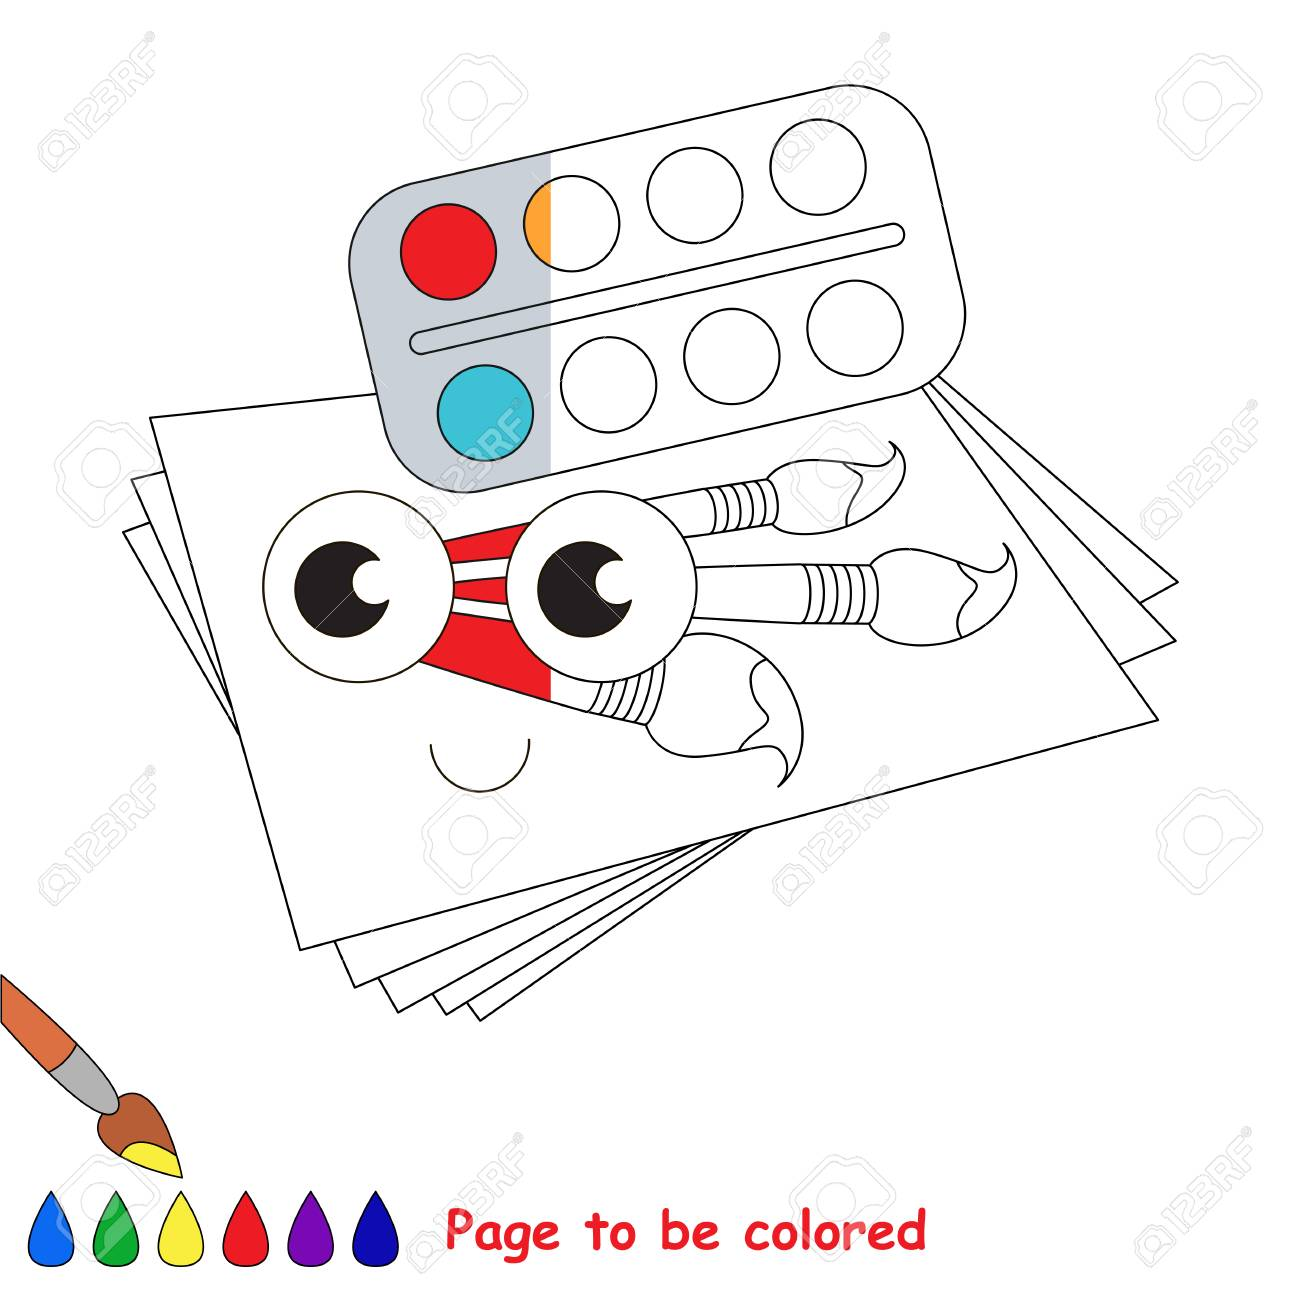 Funny Watercolor Set With Paper And Brushes The Coloring Book To Educate Preschool Kids